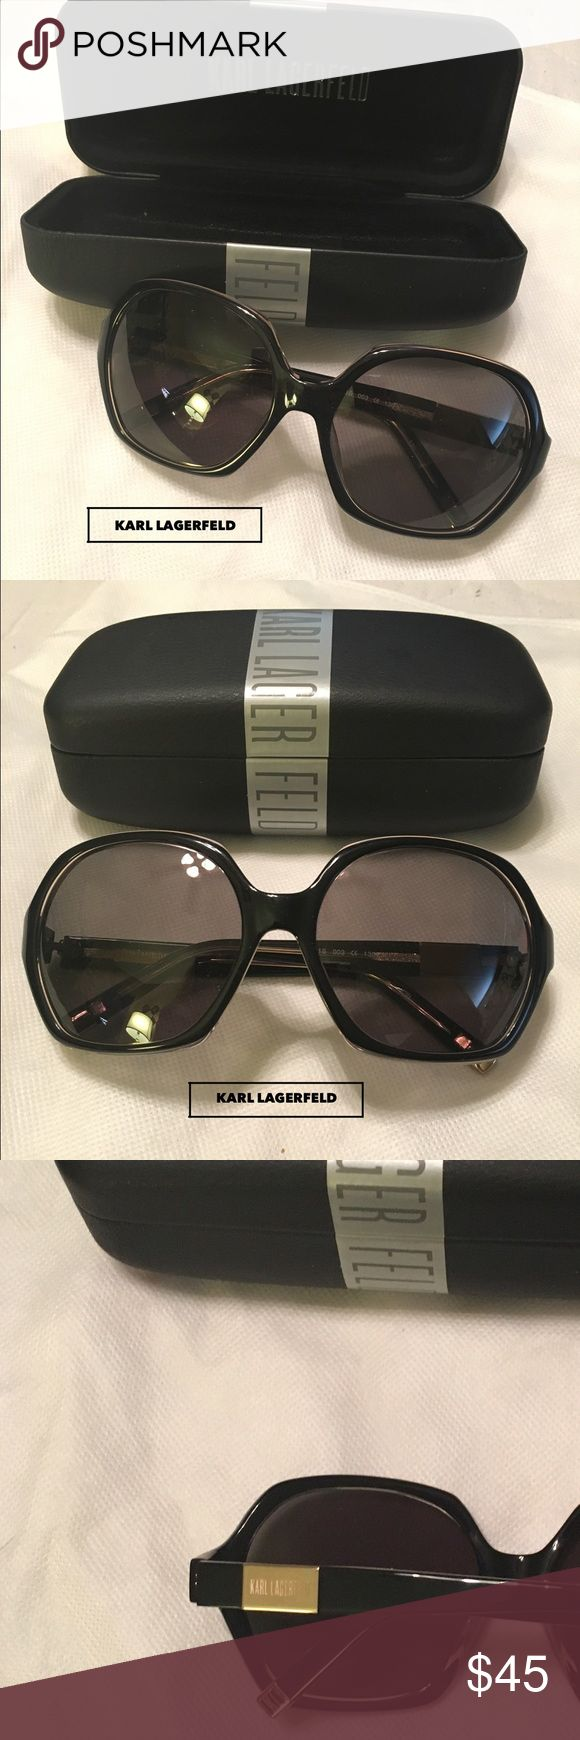 🕶Karl Lagerfeld NWNT sunglasses CASE INCLUDED 🕶 🕶Karl Lagerfeld NWNT sunglasses CASE INCLUDED 🕶 These sunglasses come with the case. VERY good condition. ☀️ Black and Gold Karl Lagerfeld Accessories Sunglasses